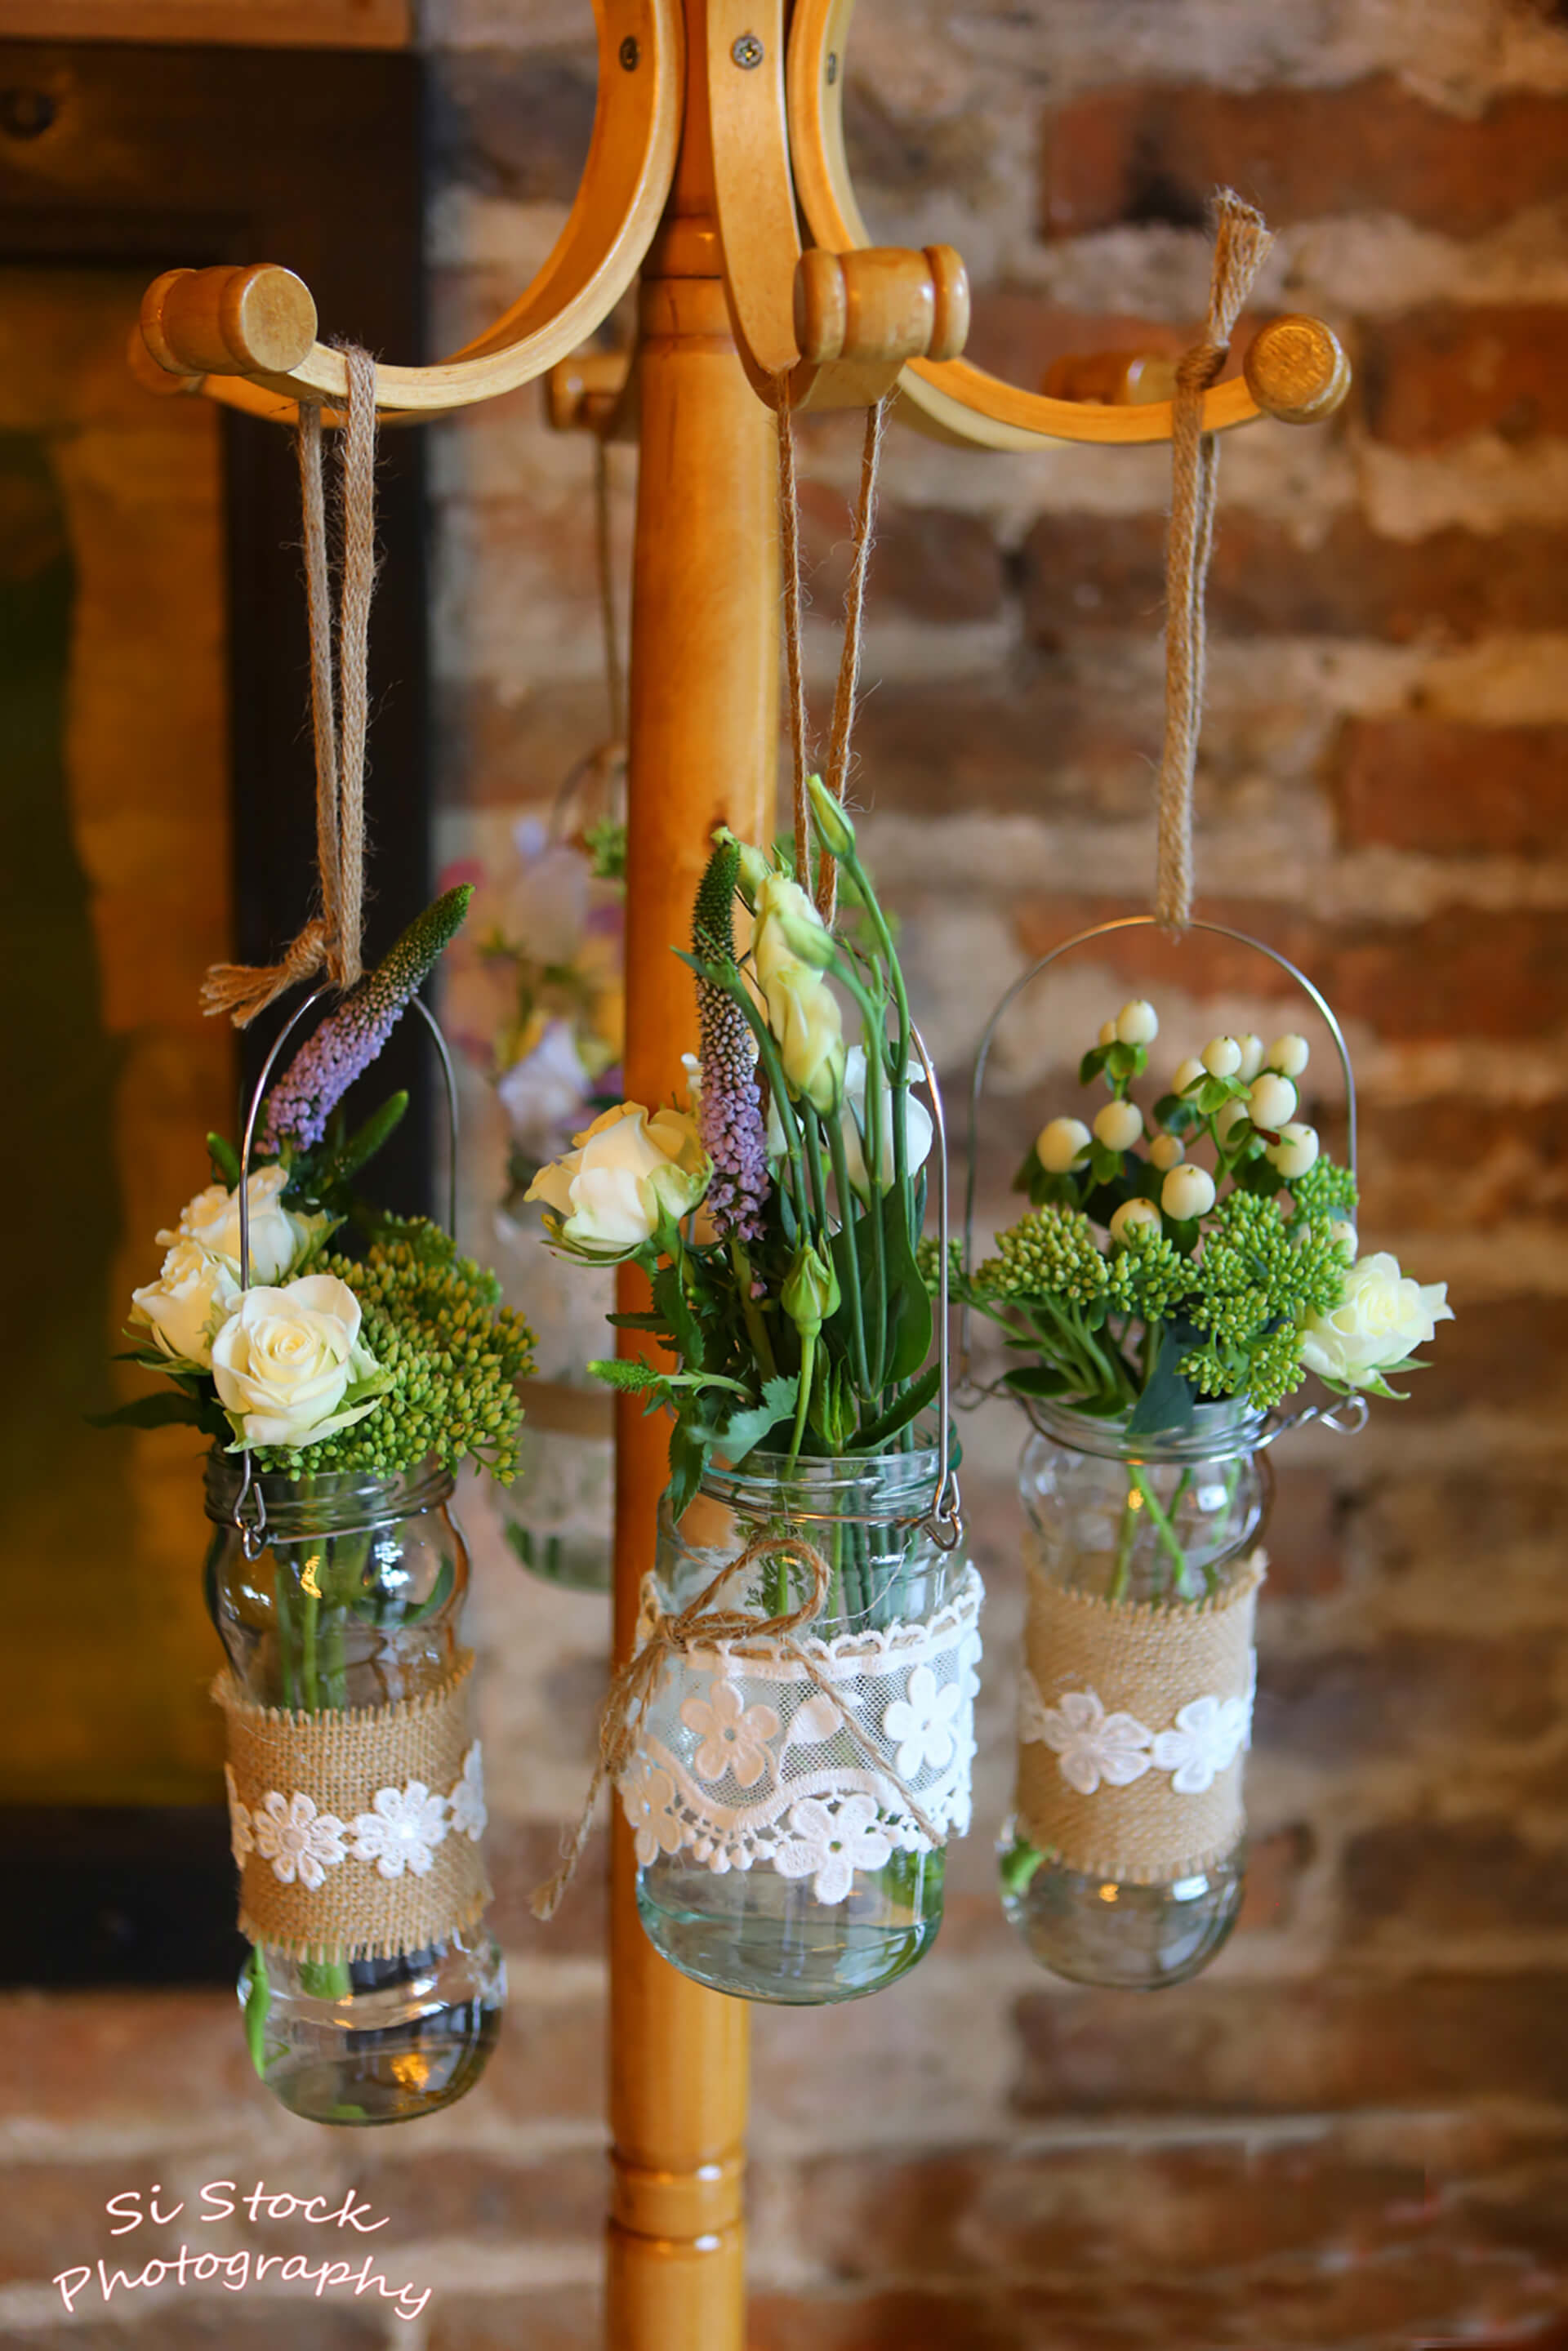 Katie and James' homemade hanging vases were so beautiful. Photo by Simon Stock.